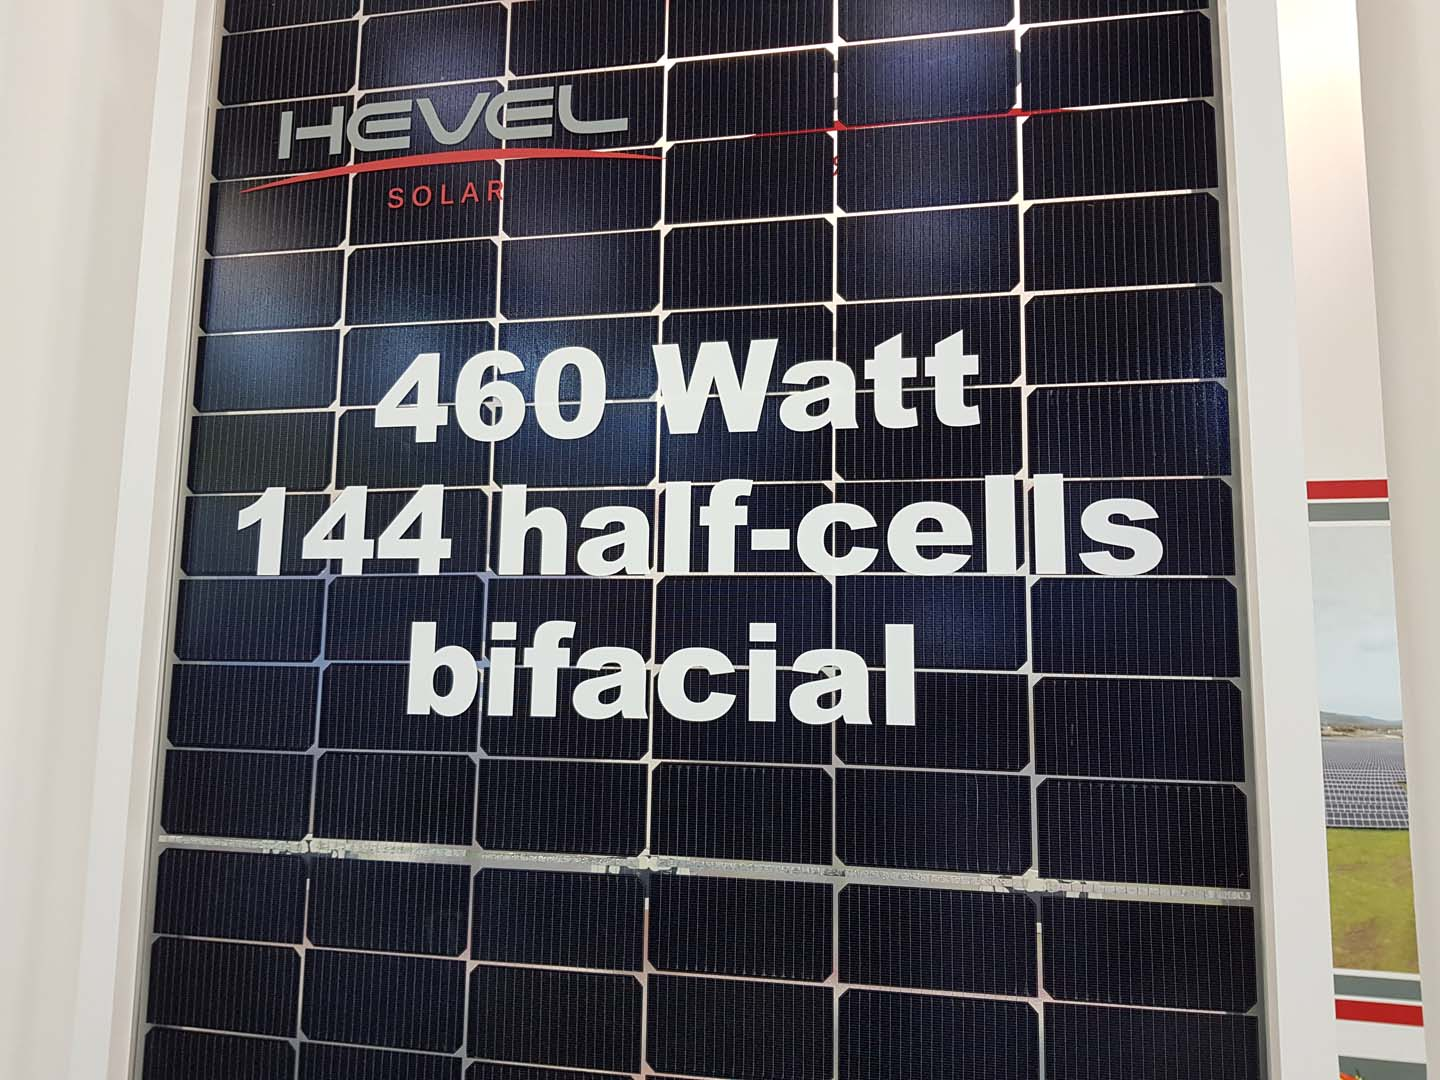 The move to HJT may be as simple as needing to repurpose legacy a-Si investments (e.g. Hevel Solar, 3Sun/Enel) and seeing HJT as the natural c-Si based path. Image: PV Tech